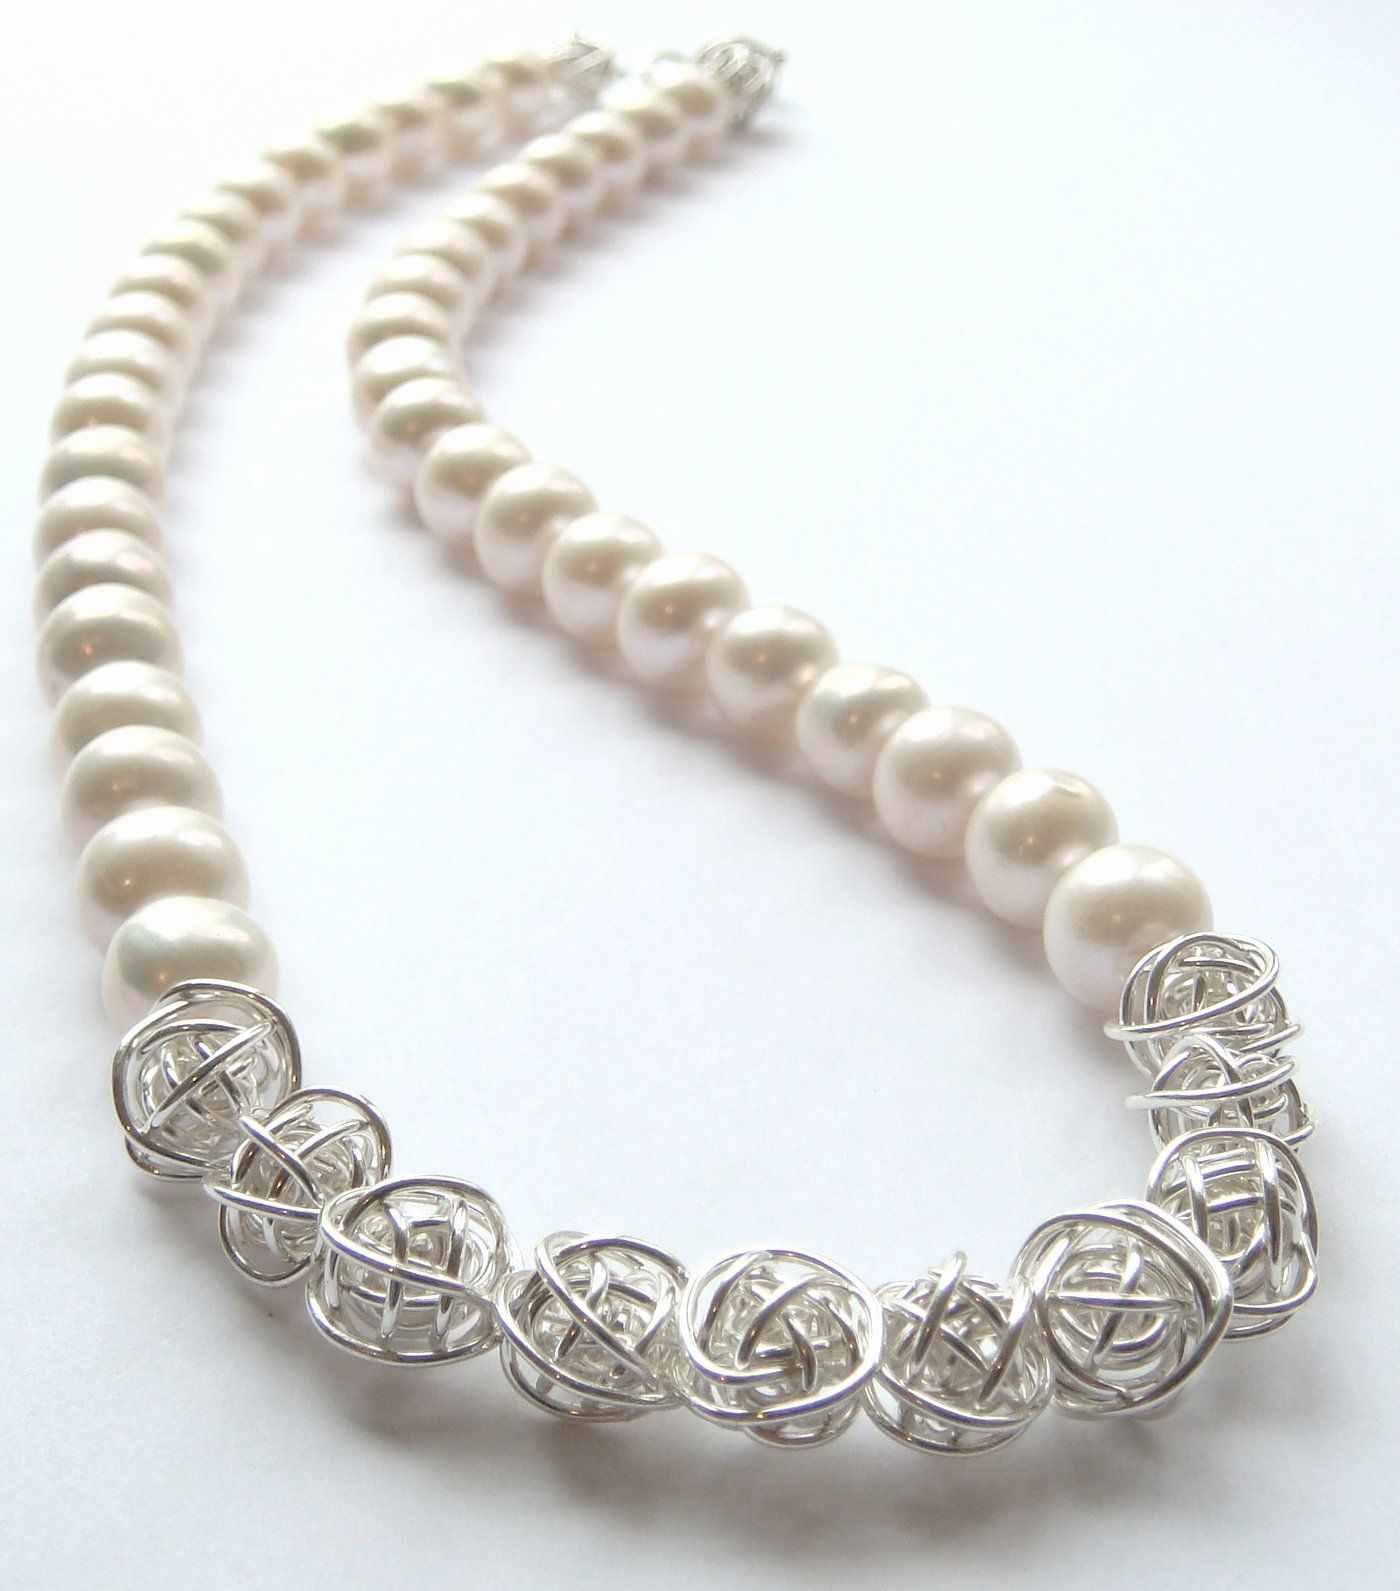 Pearl & Wire Ball Necklace - A beautiful pearl and wire ball ...